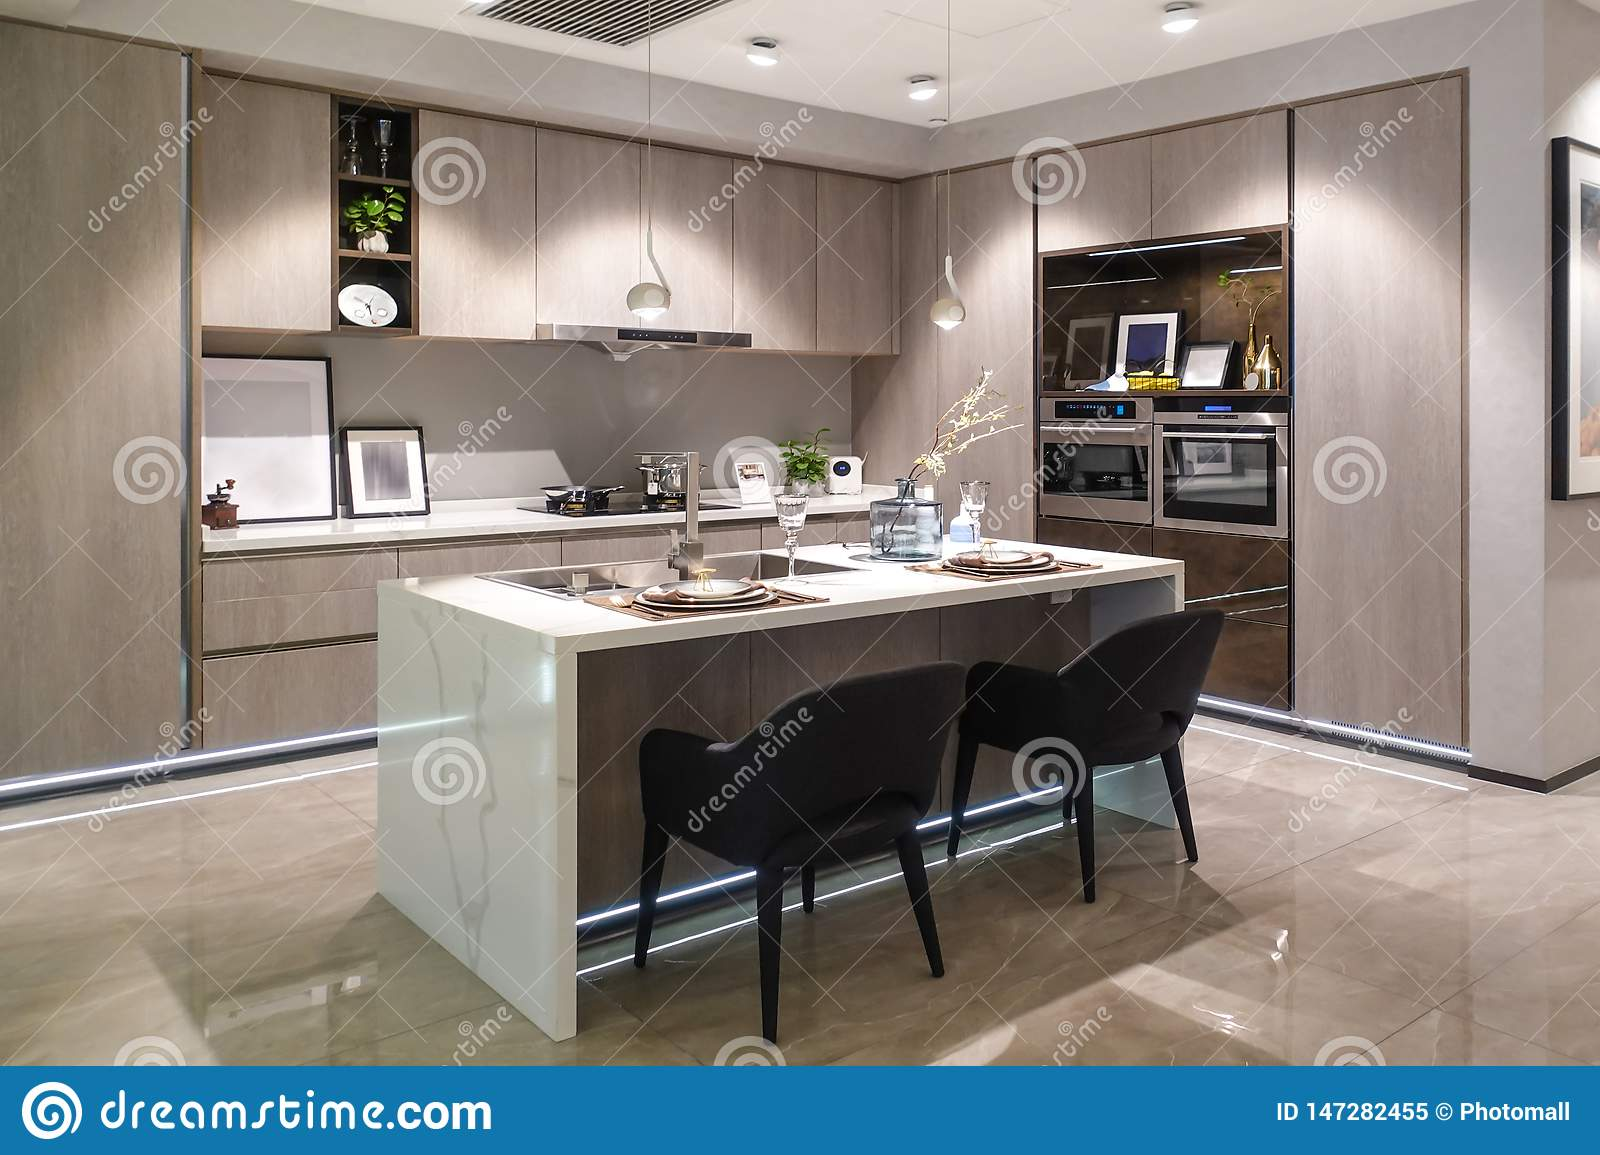 Interior Of Luxury Kitchen Dining Room Modern Home Decoration